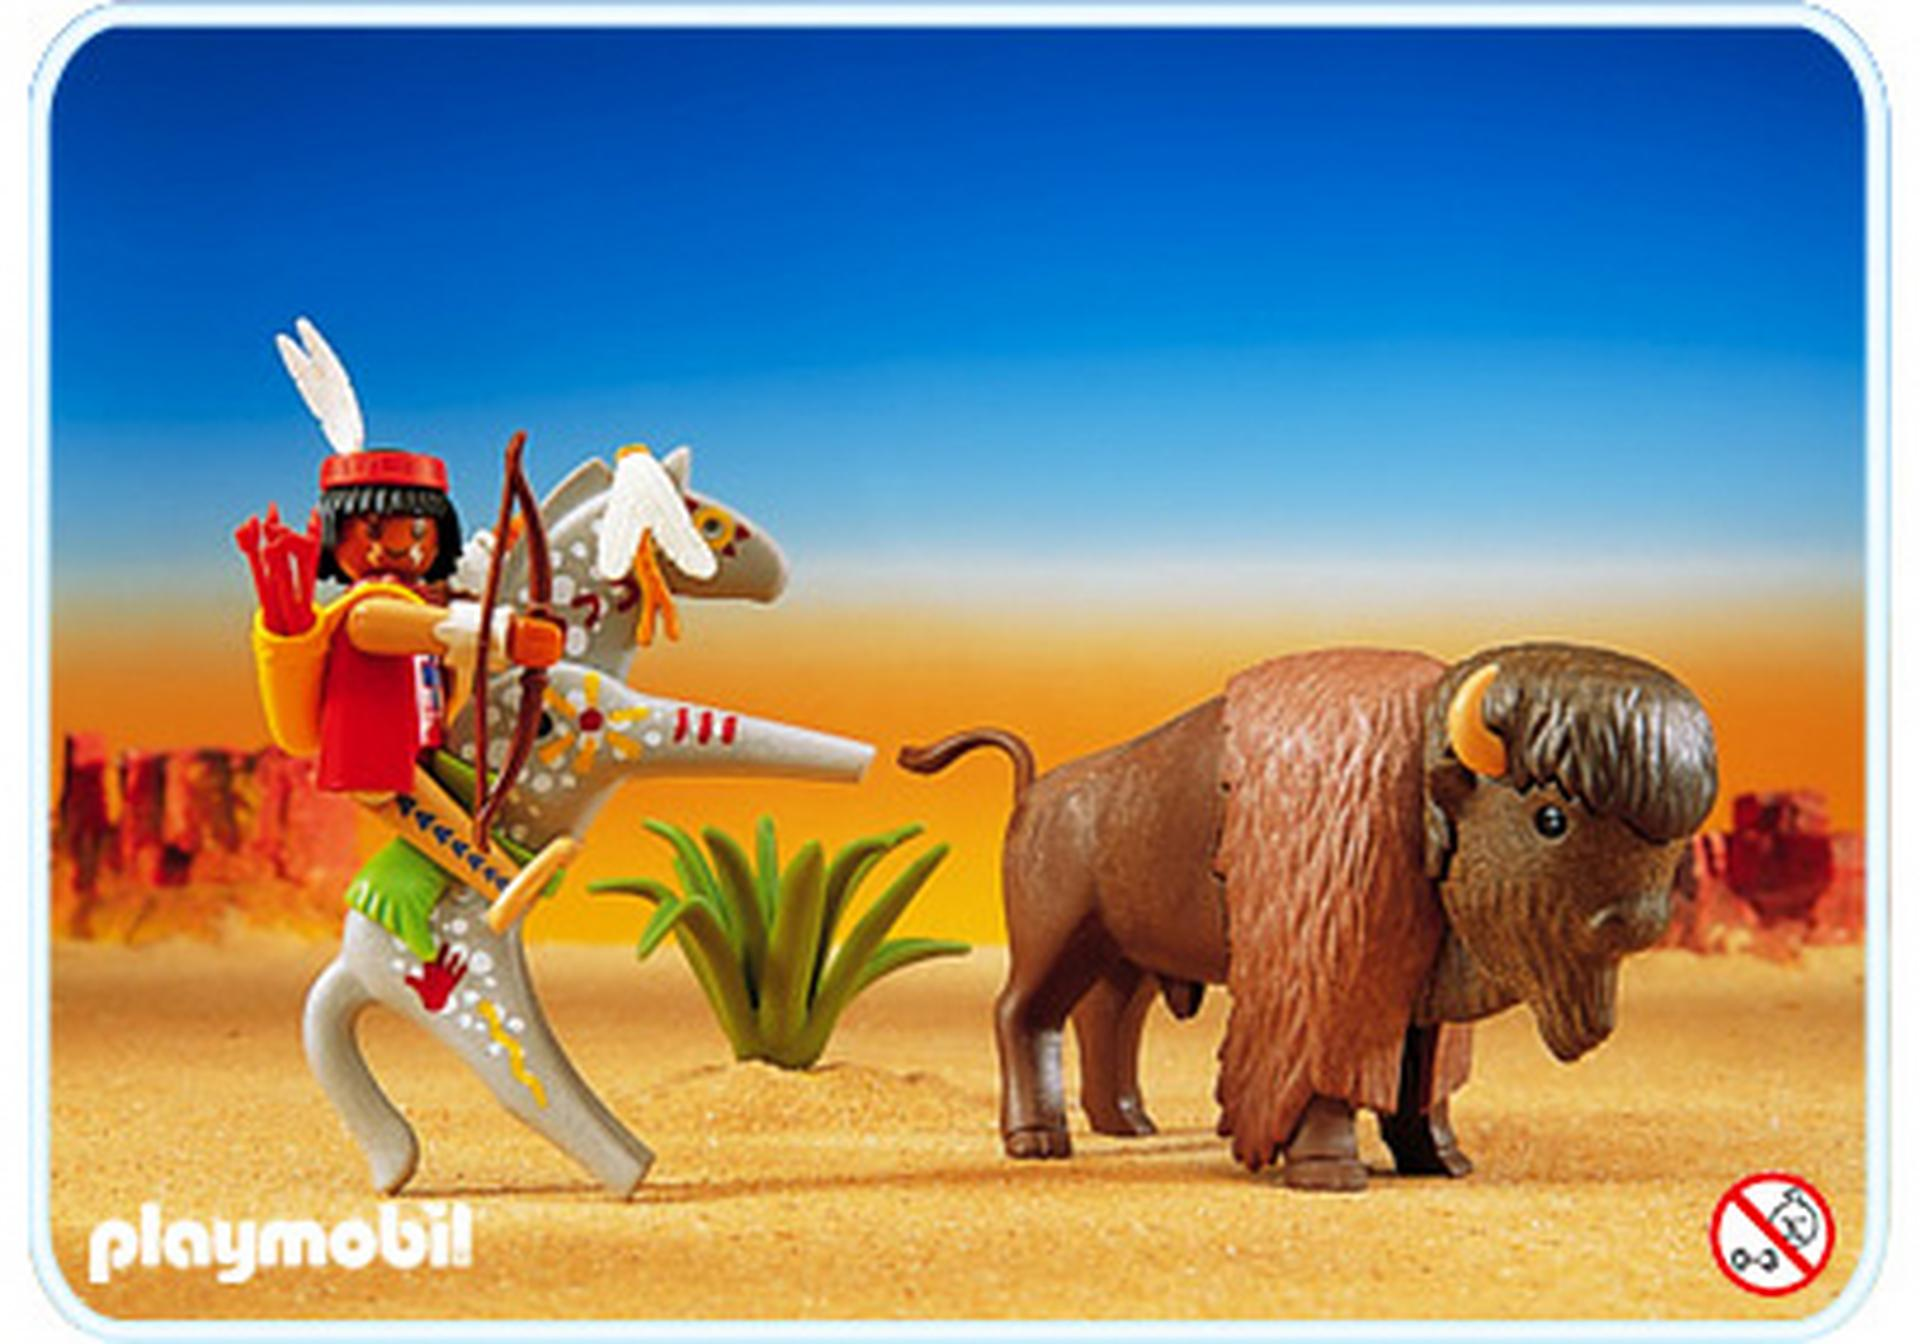 Bison cheval et indien 3731 a playmobil france for Playmobil buanderie